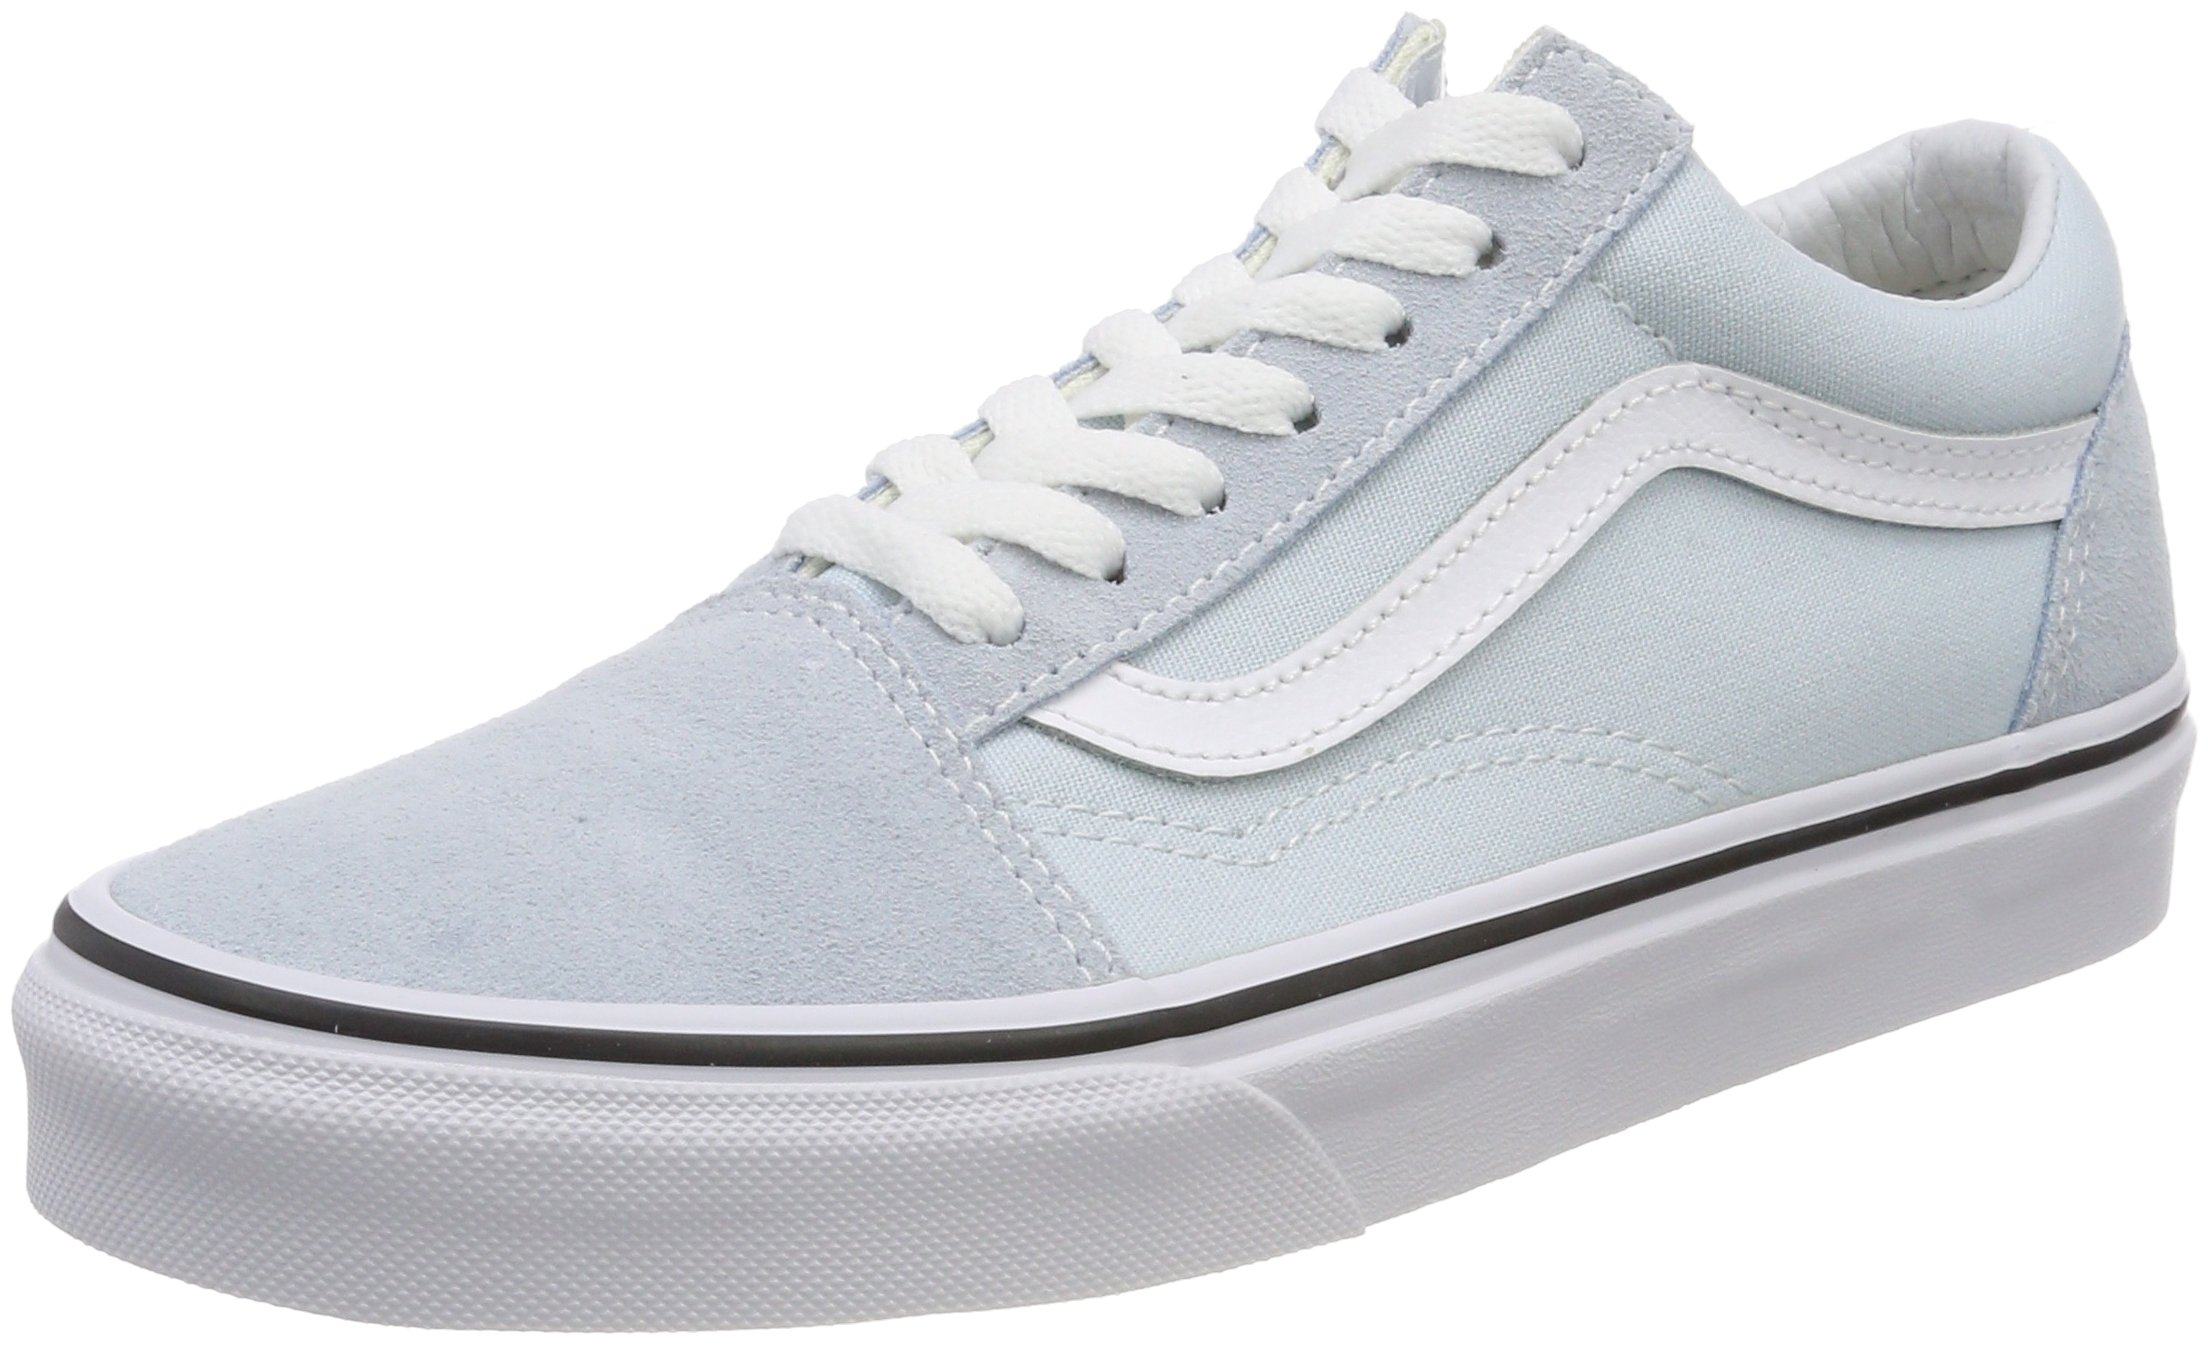 421e6b50bb Galleon - Vans Women s Old Skool Trainers